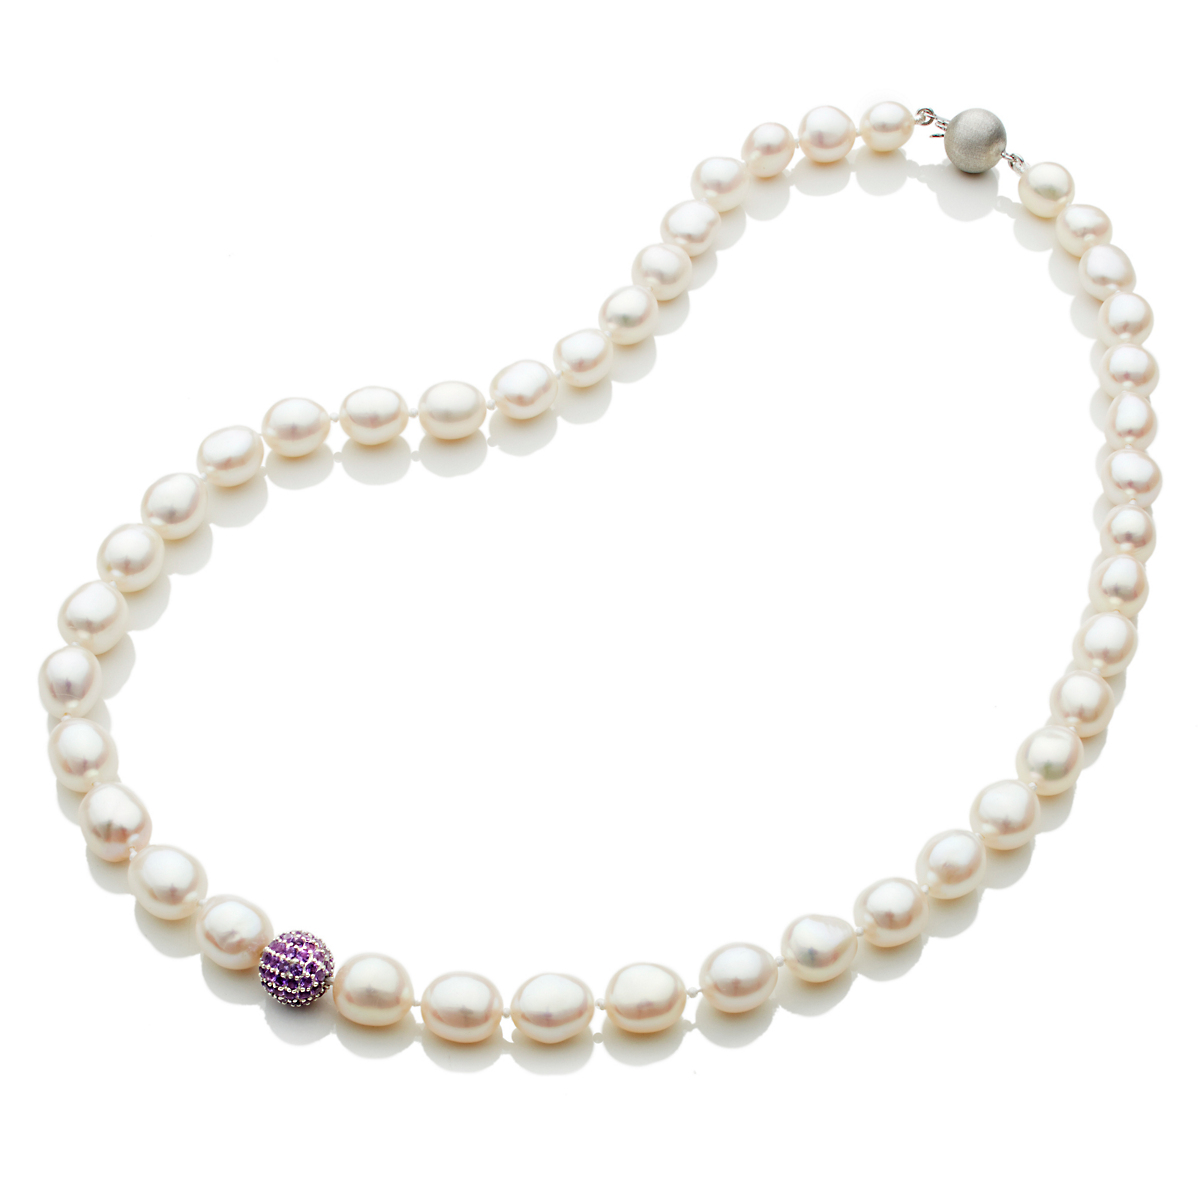 Gump's Freshwater Pearl & Pavé Amethyst Bead Necklace